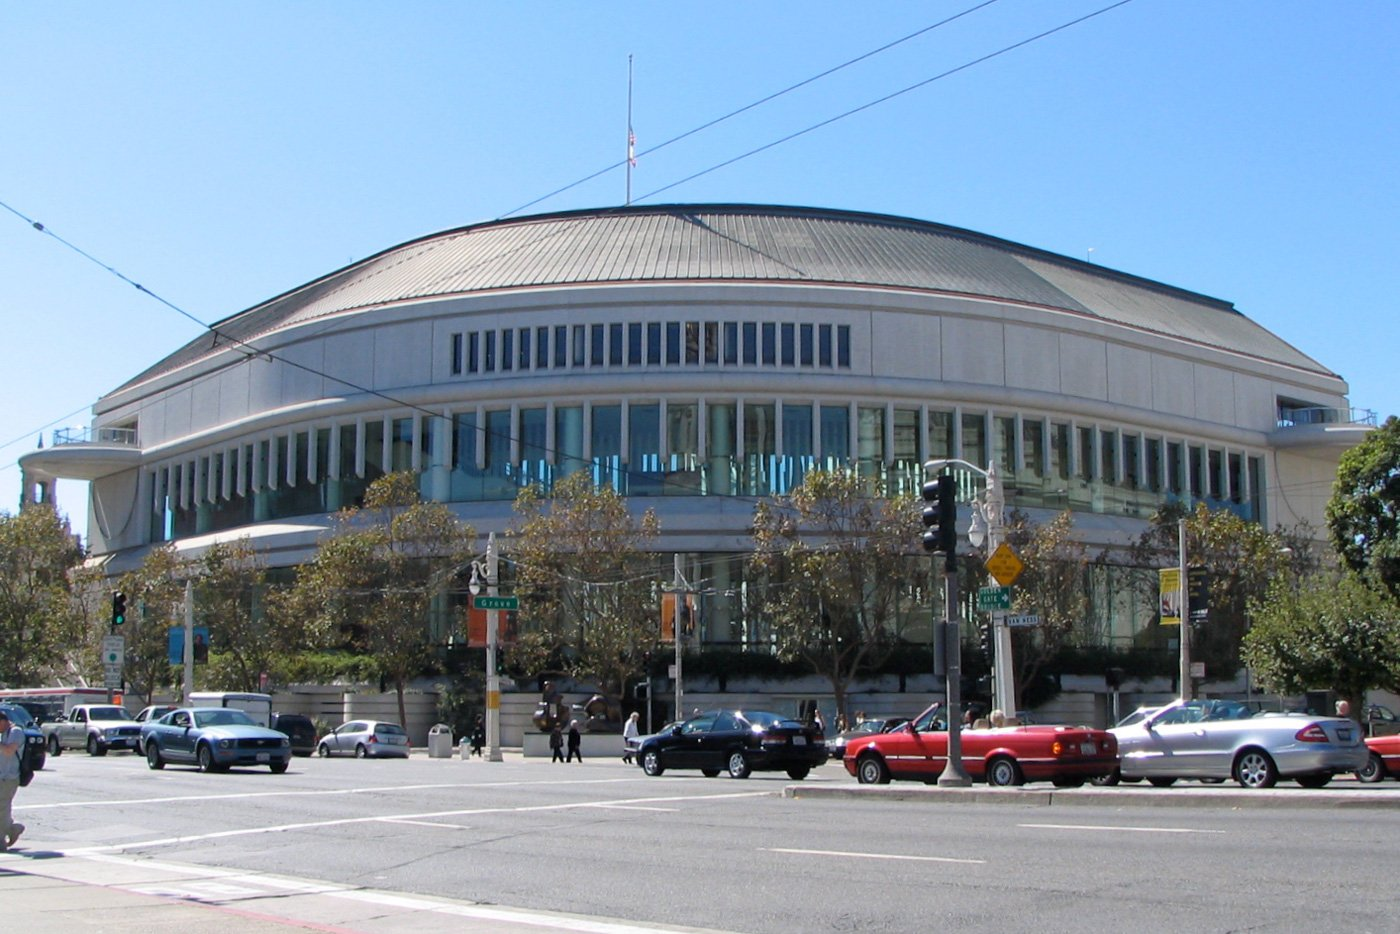 The Louise M. Davies Symphony Hall was constructed in 1980 and is home to the San Francisco Symphony.